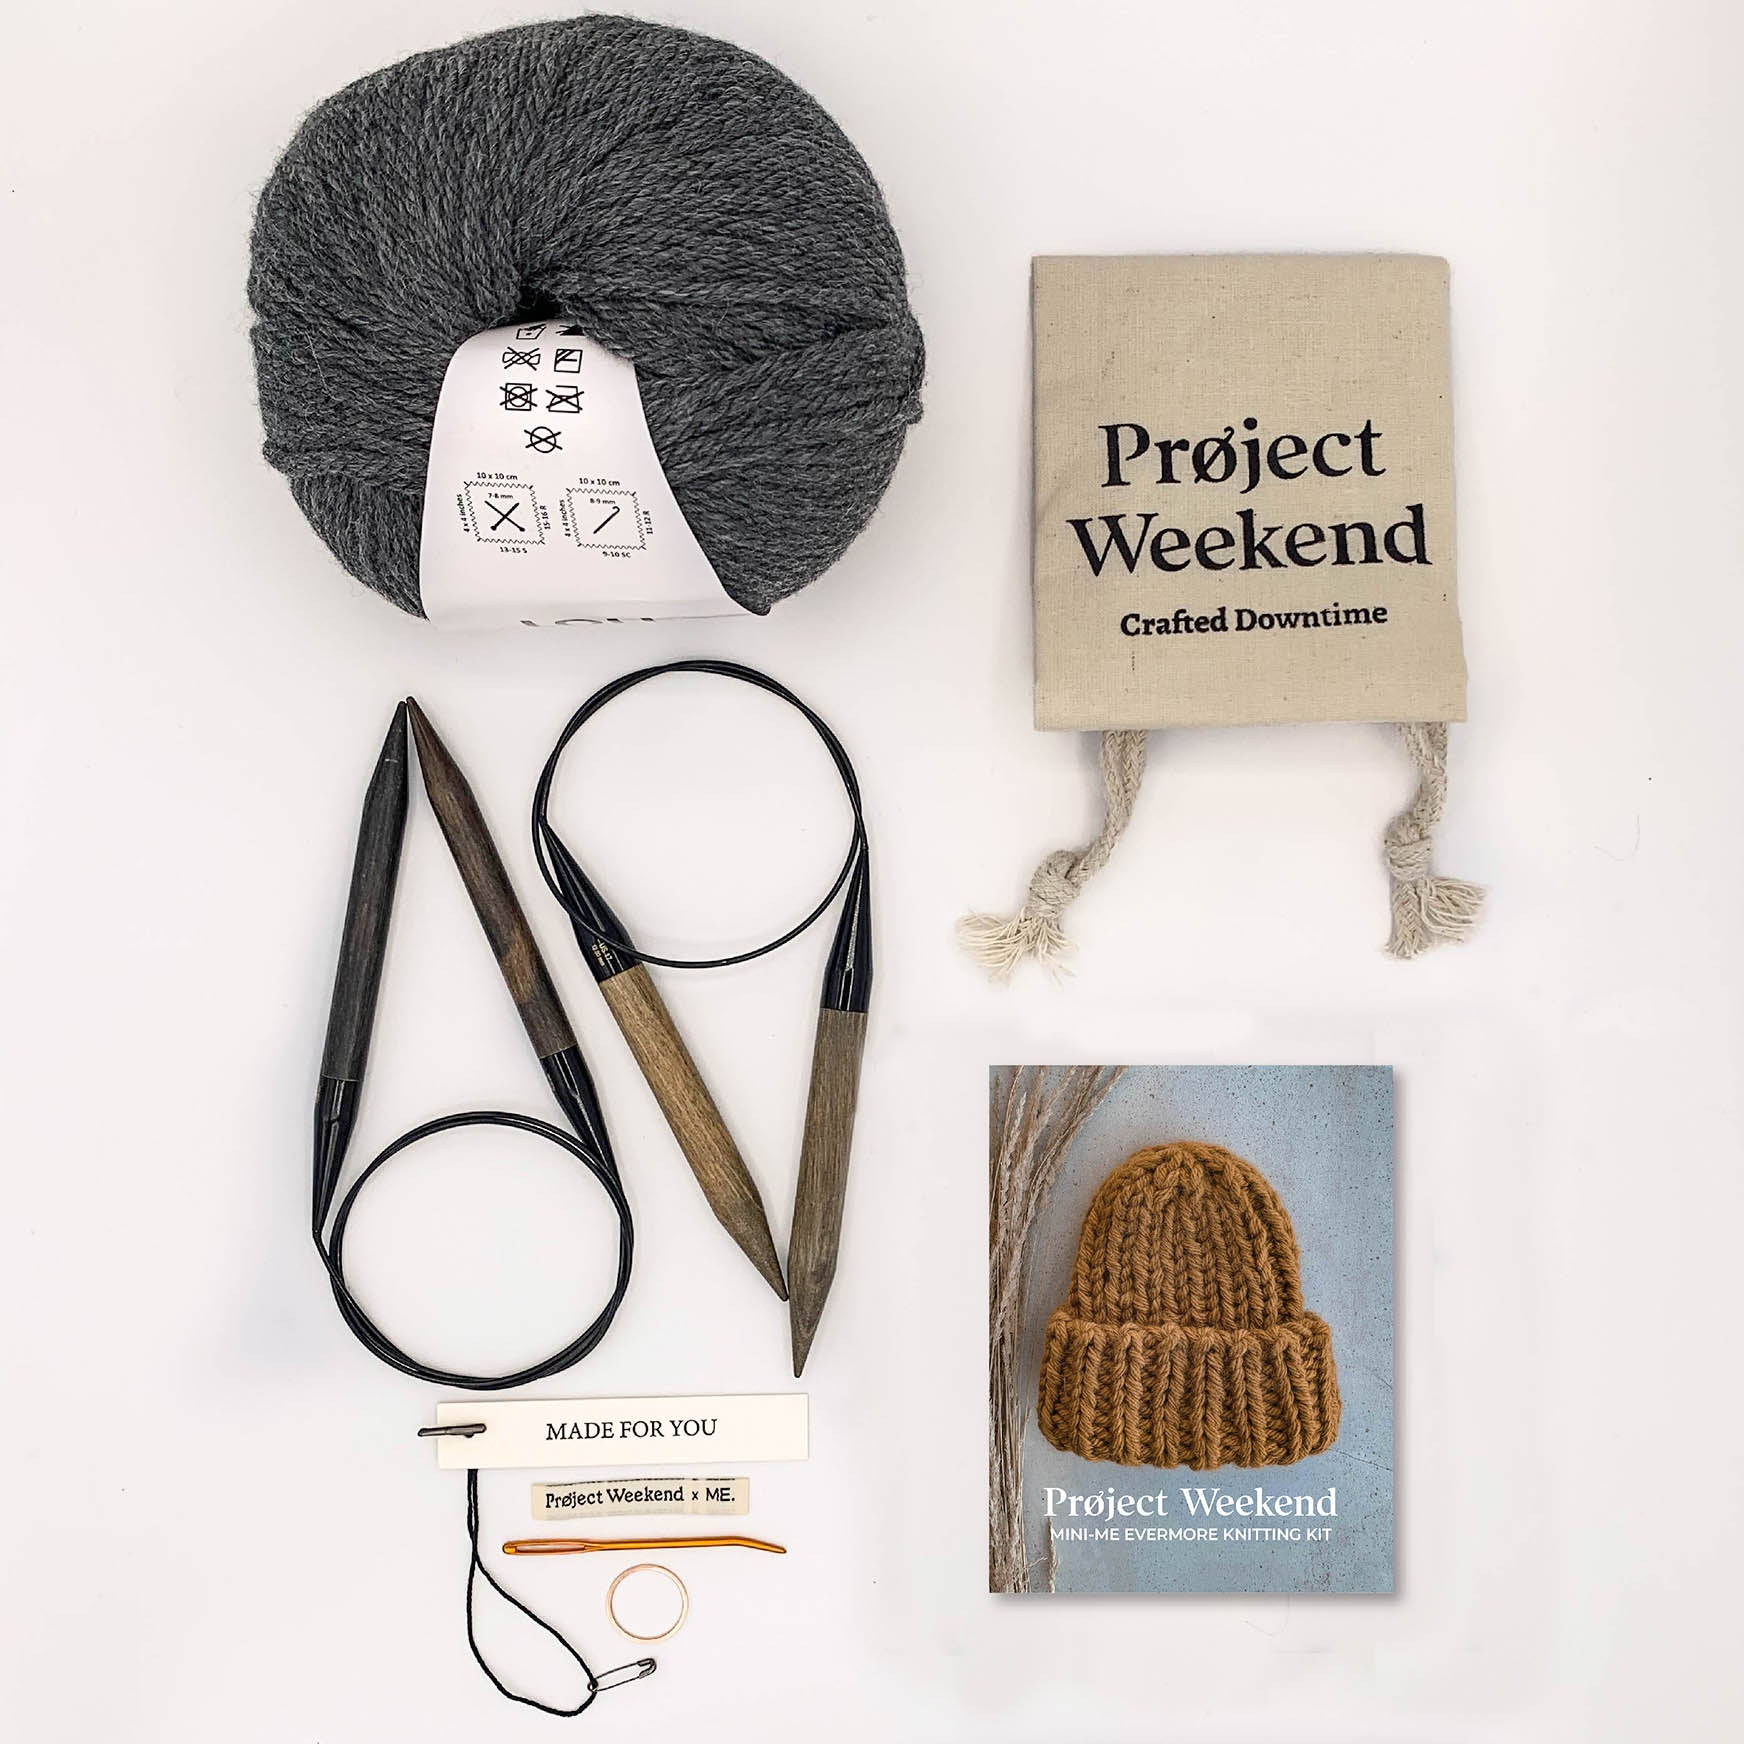 MINI-ME EVERMORE HAT KIT